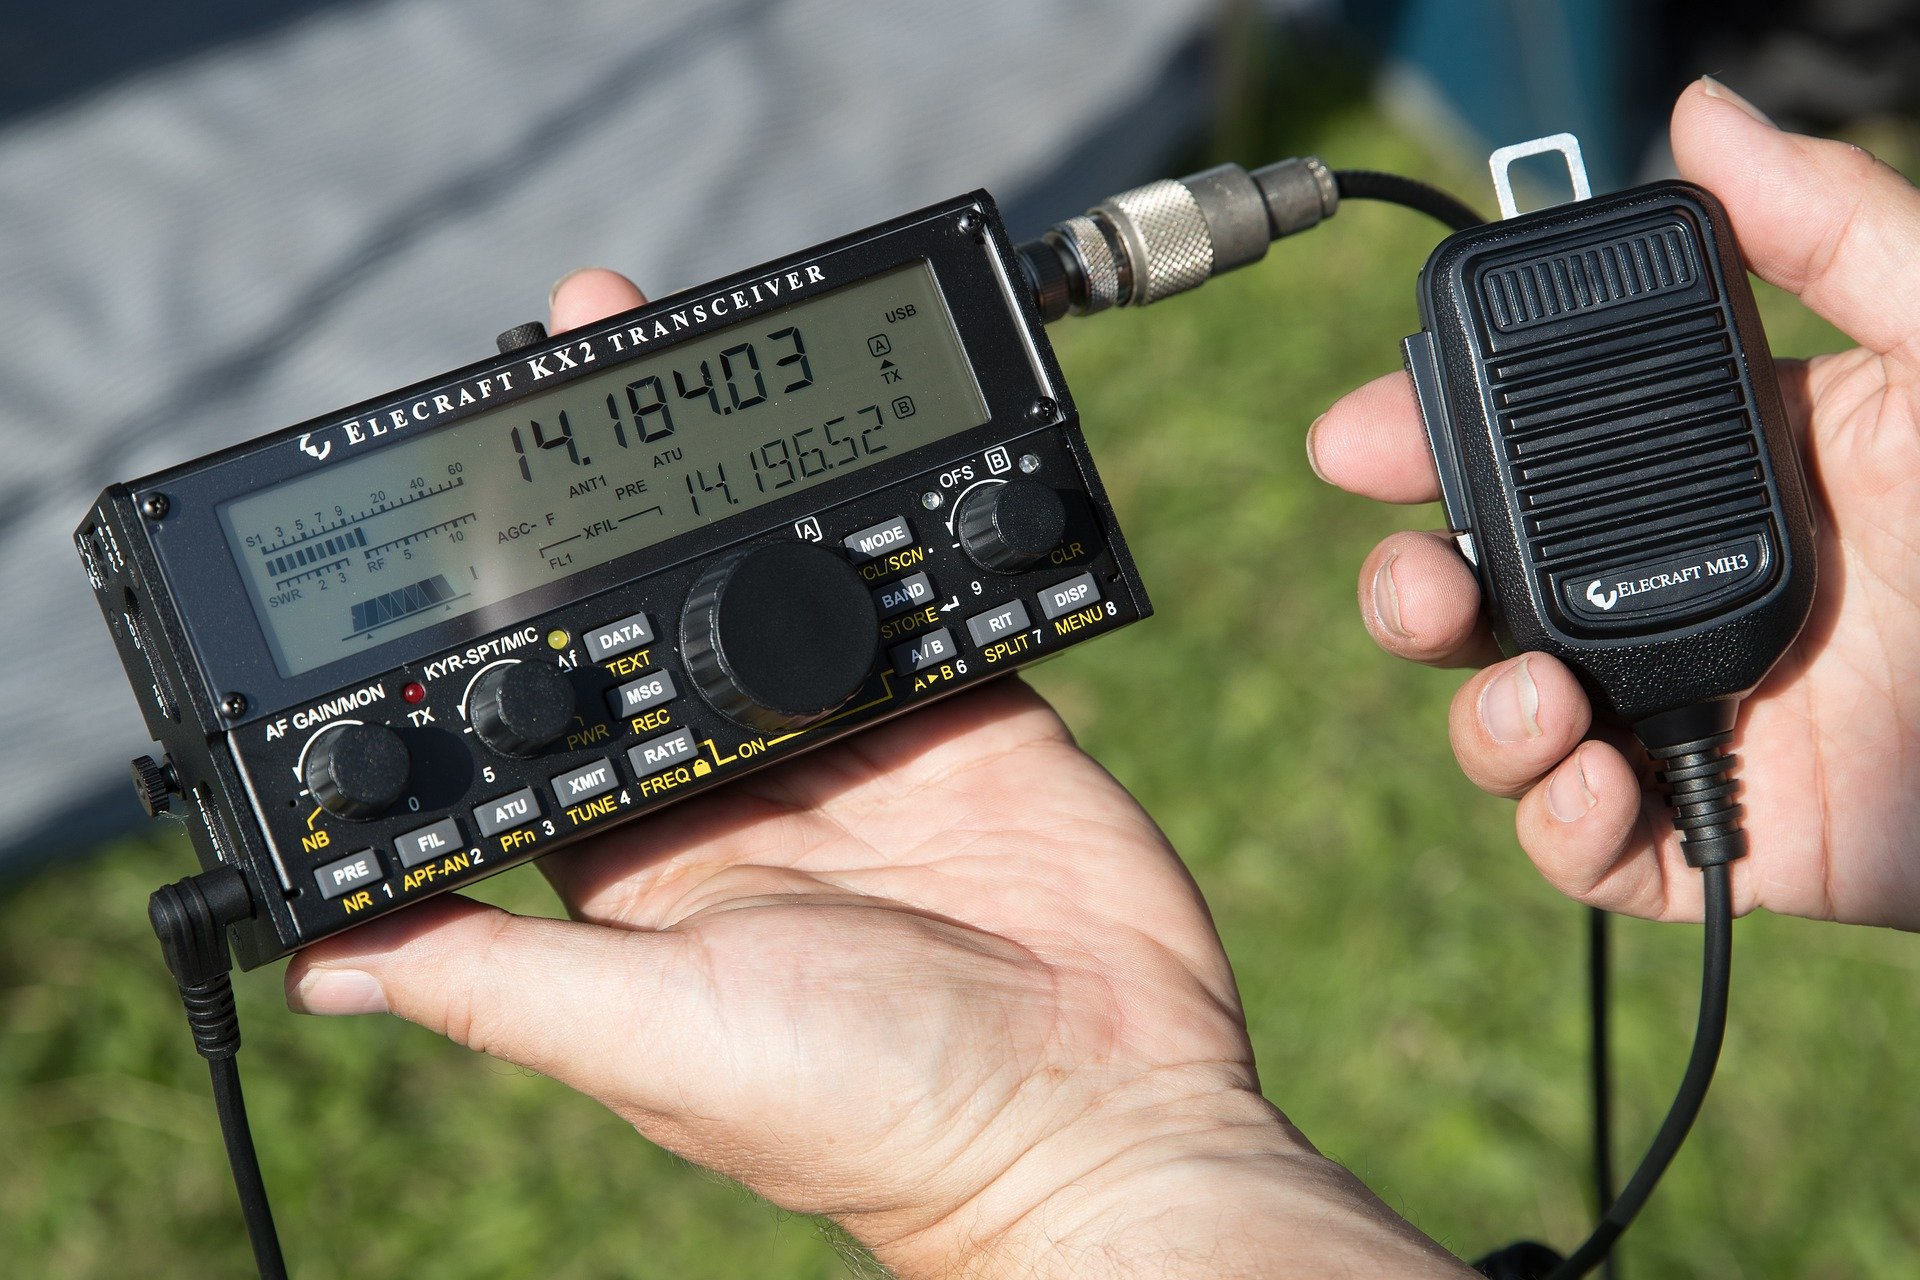 The faceplate of a HAM radio